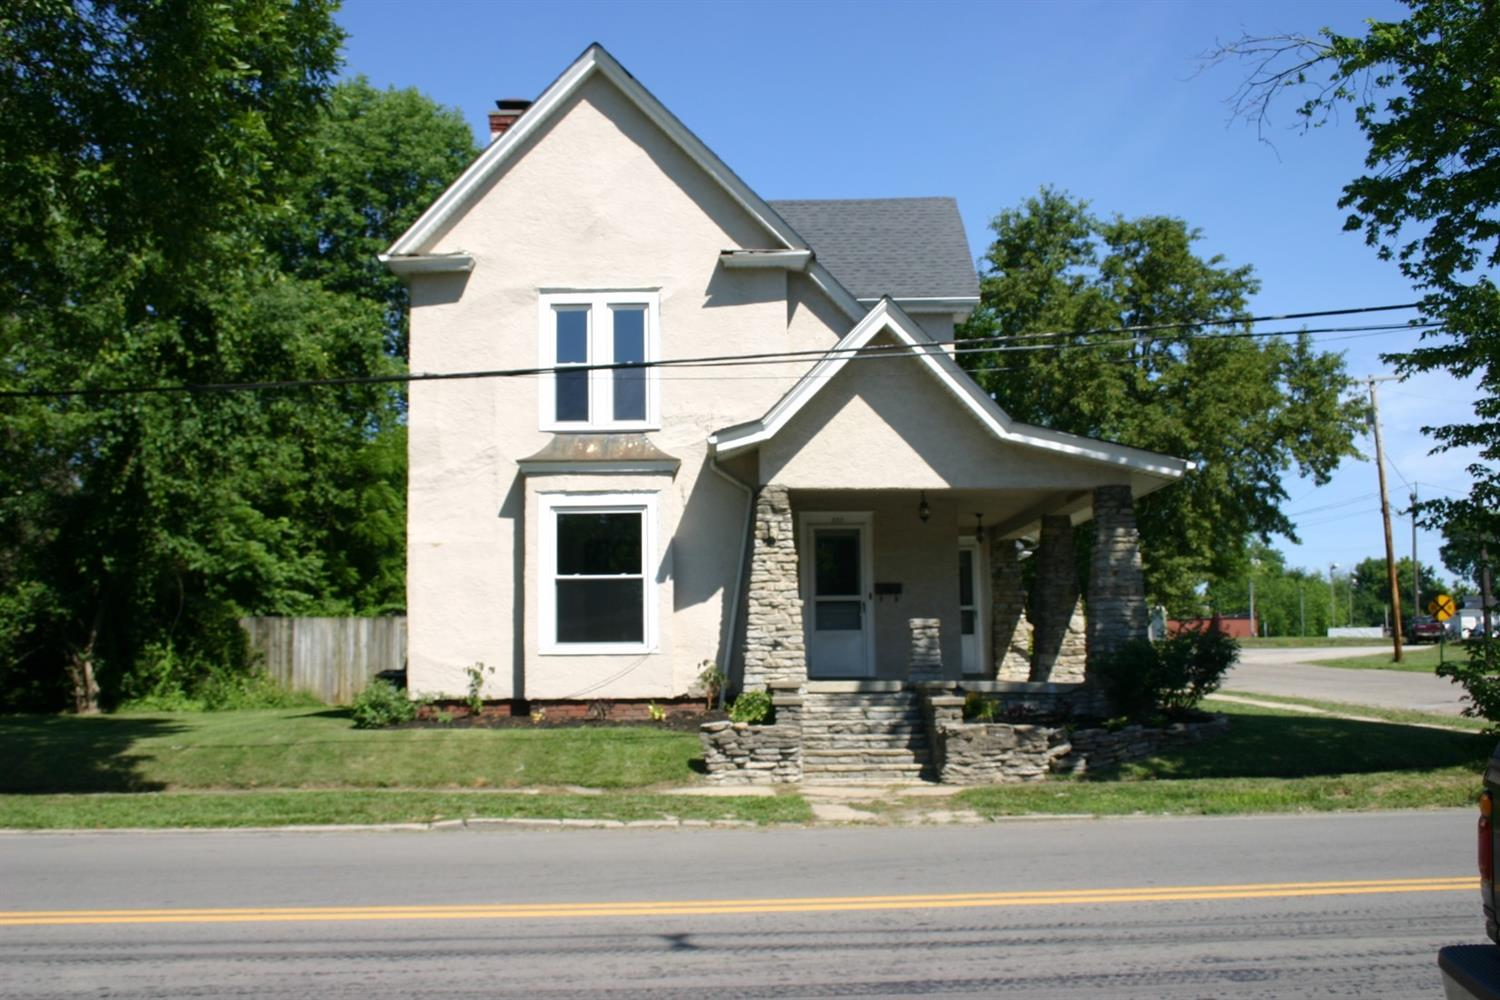 Property for sale at 202 Bourbon Street, Blanchester,  Ohio 45107